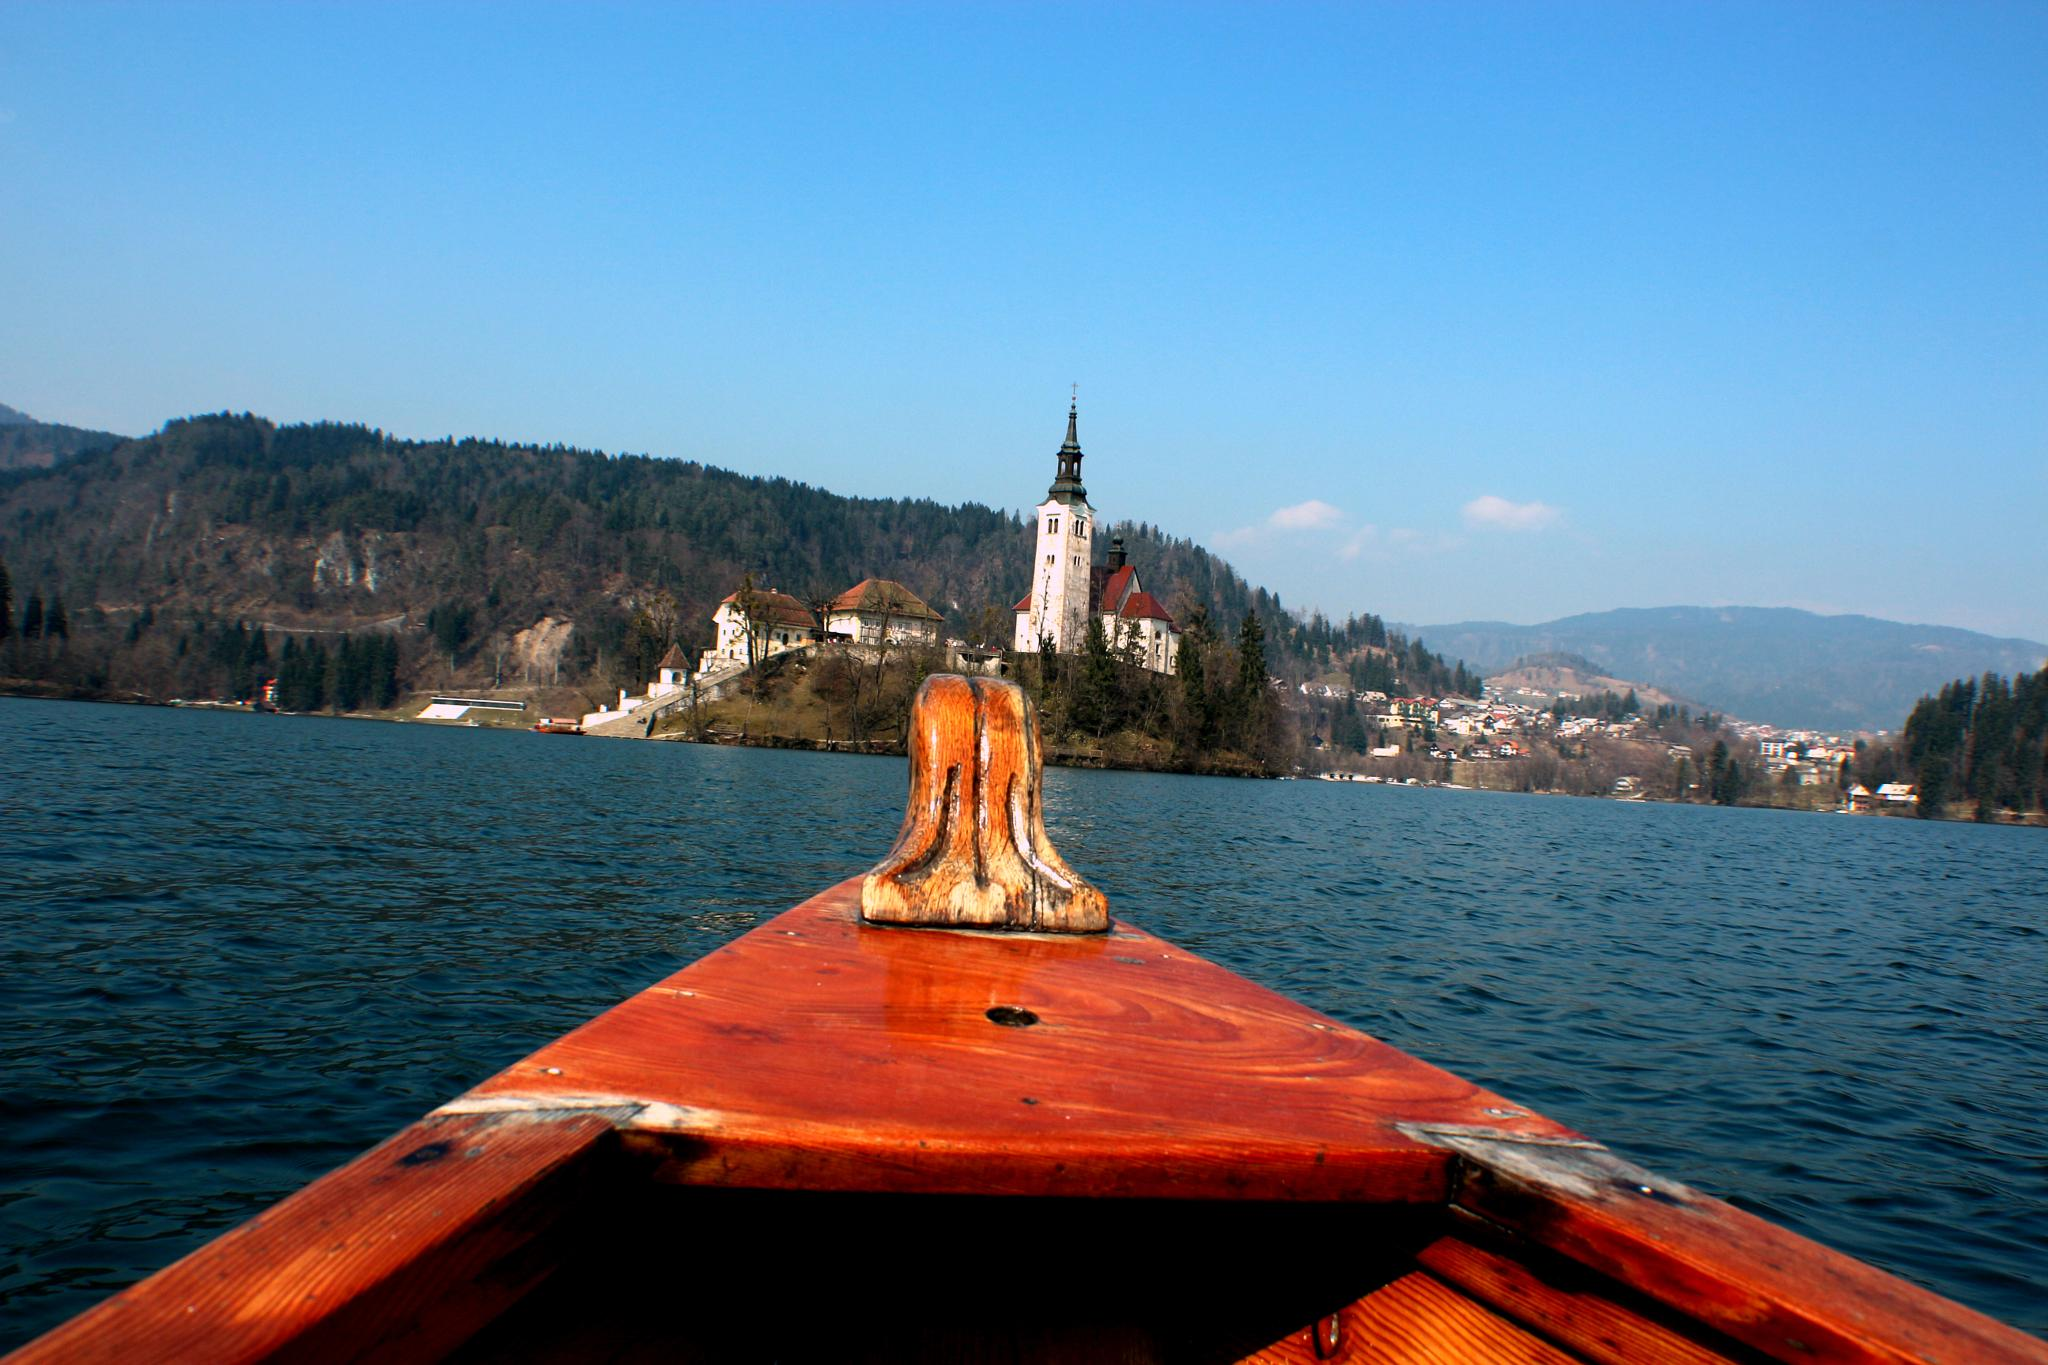 Bled island over the prow  by Andraž Sodja